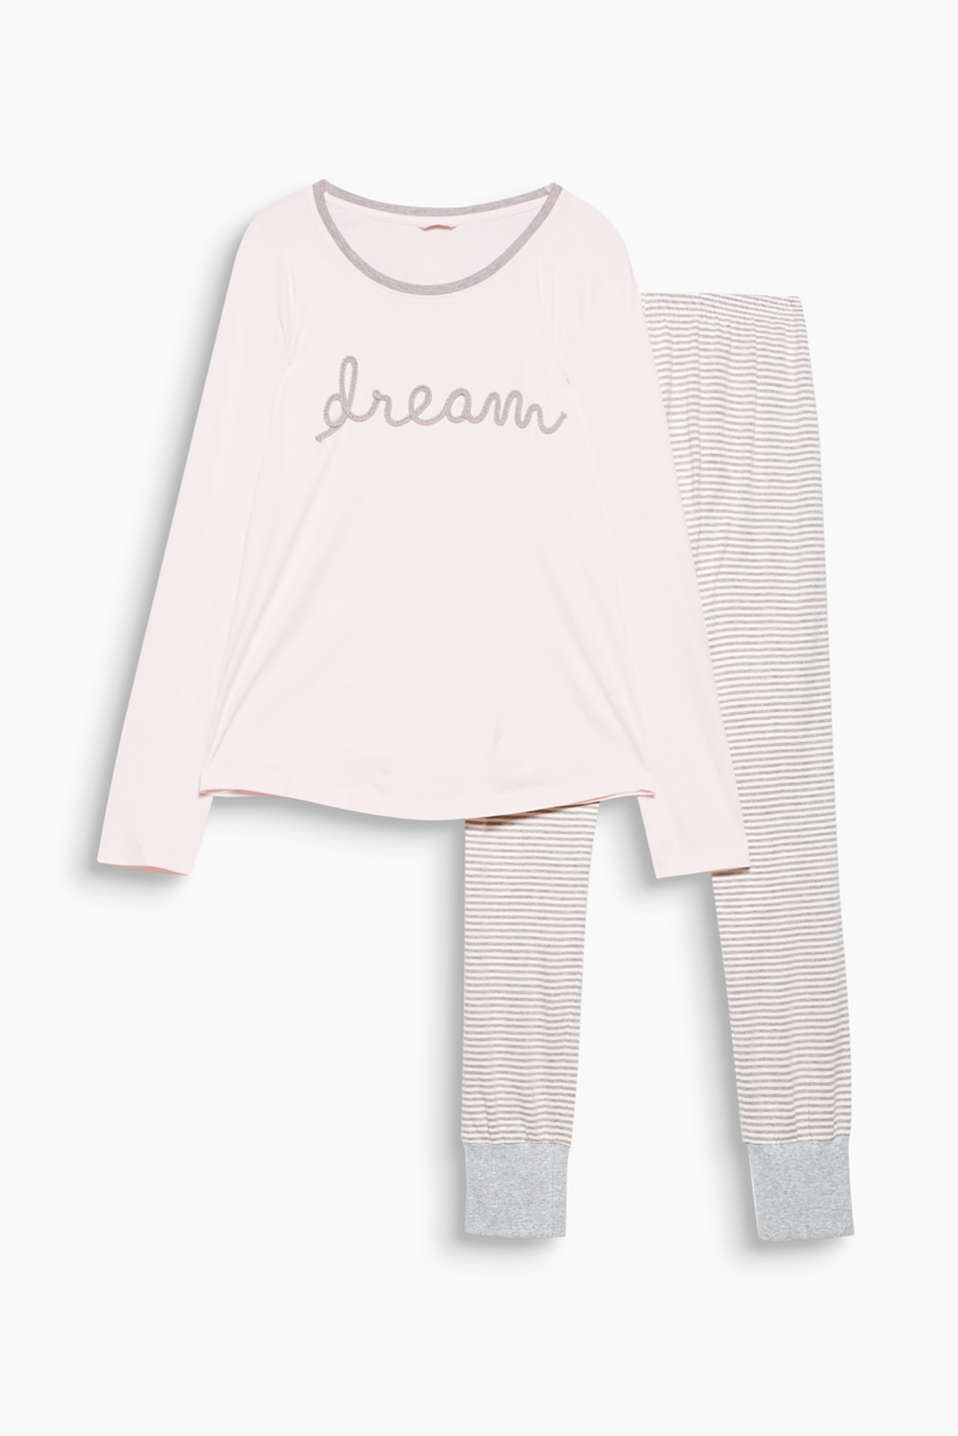 A striped look meets dream embroidery! The wavy dream lettering and the striped bottoms are the perfect mix.